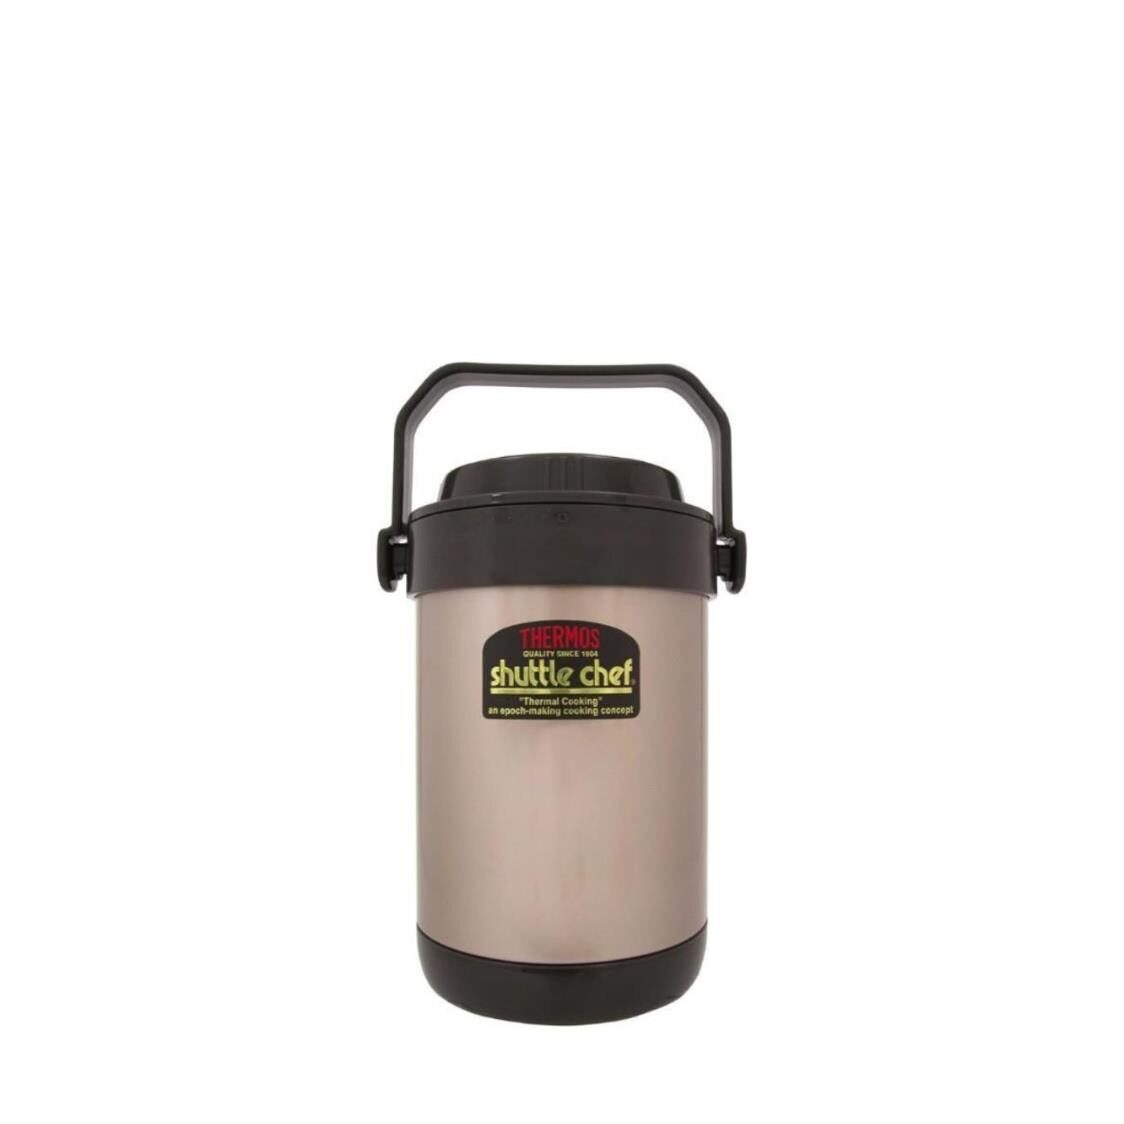 Thermos Shuttle Chef 15L